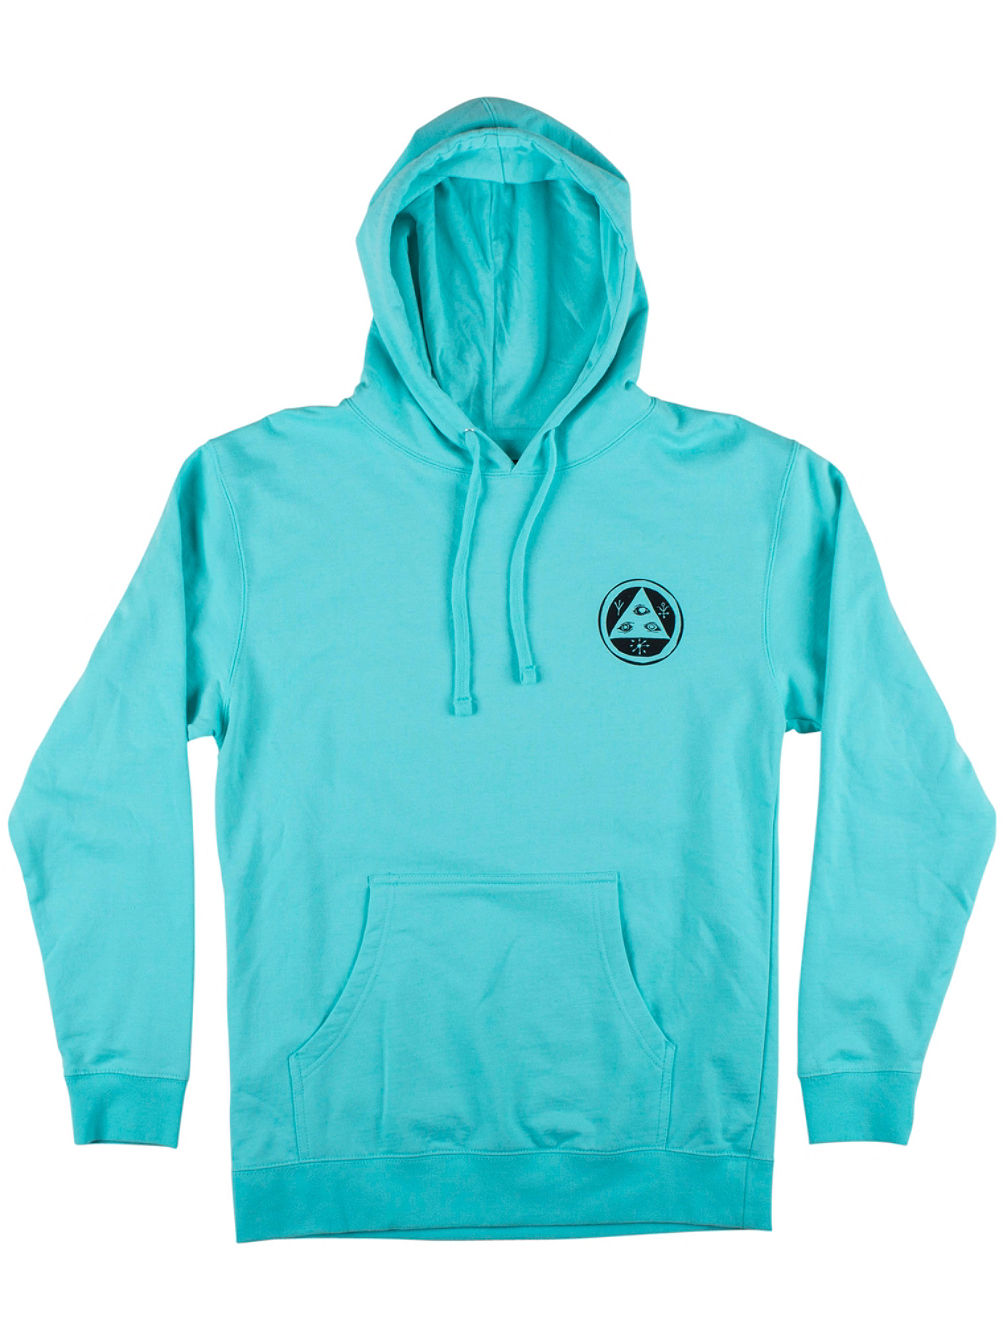 d2a2c057be5 Buy Welcome Devoramus Hoodie online at blue-tomato.com